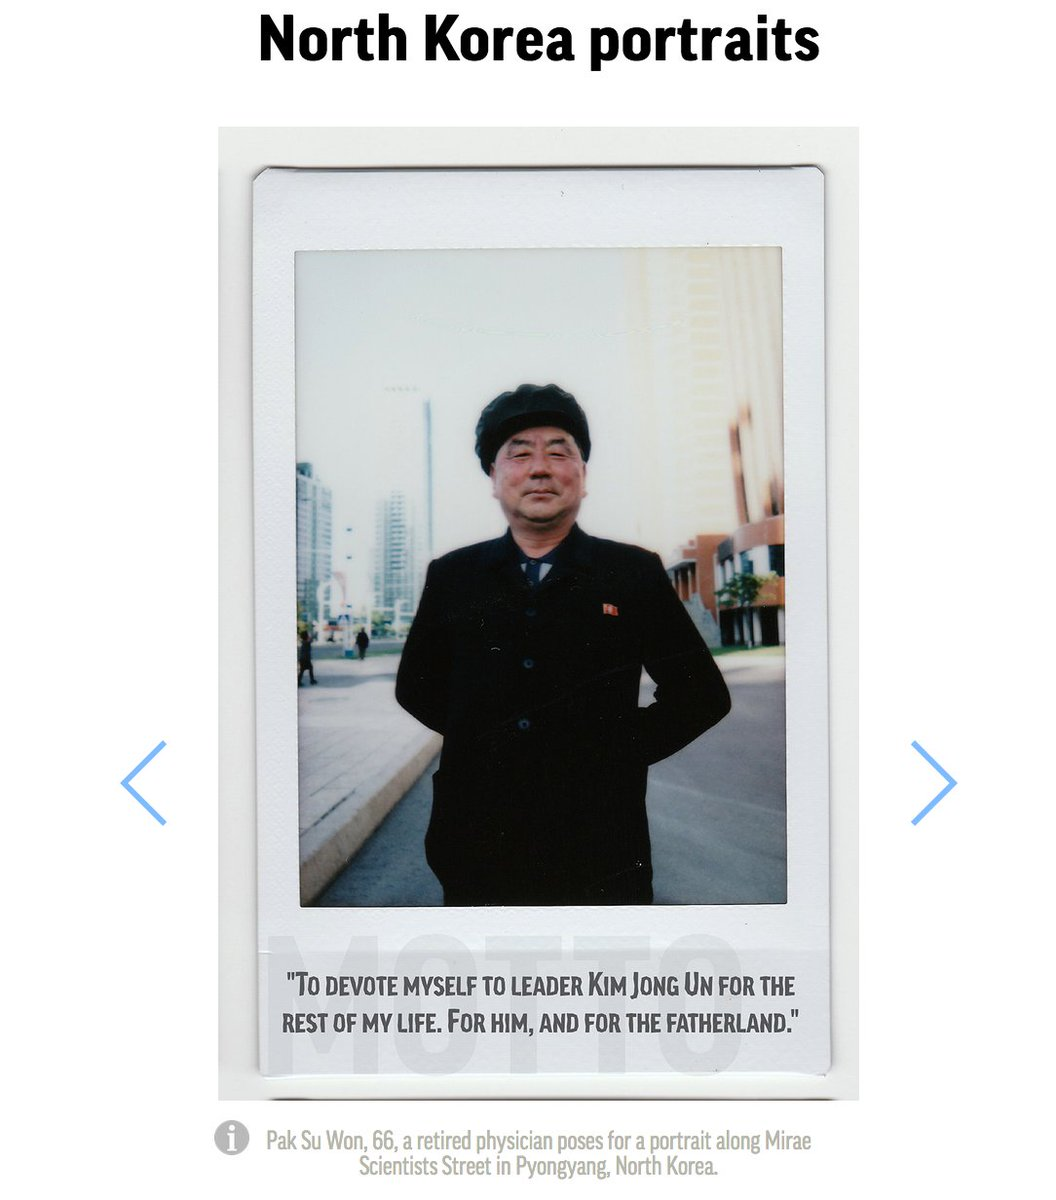 North Korean portraits: a window into their everyday lives. https://t.co/gpx9yf4JY5